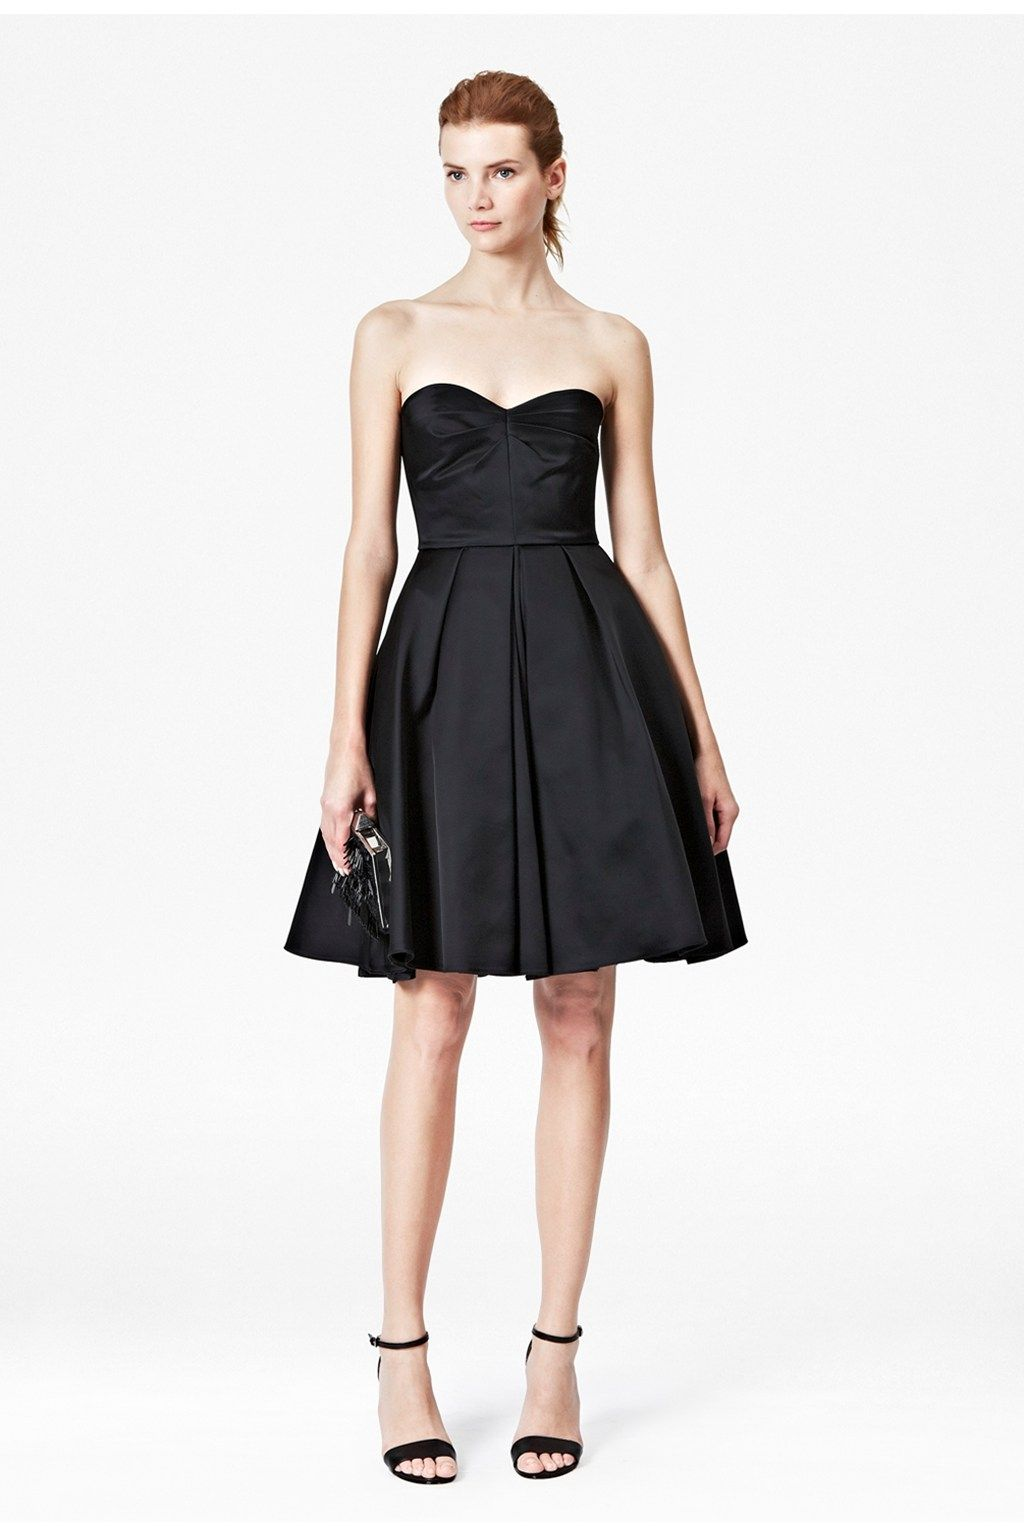 Duchess Divine Strapless Dress - Dresses - French Connection